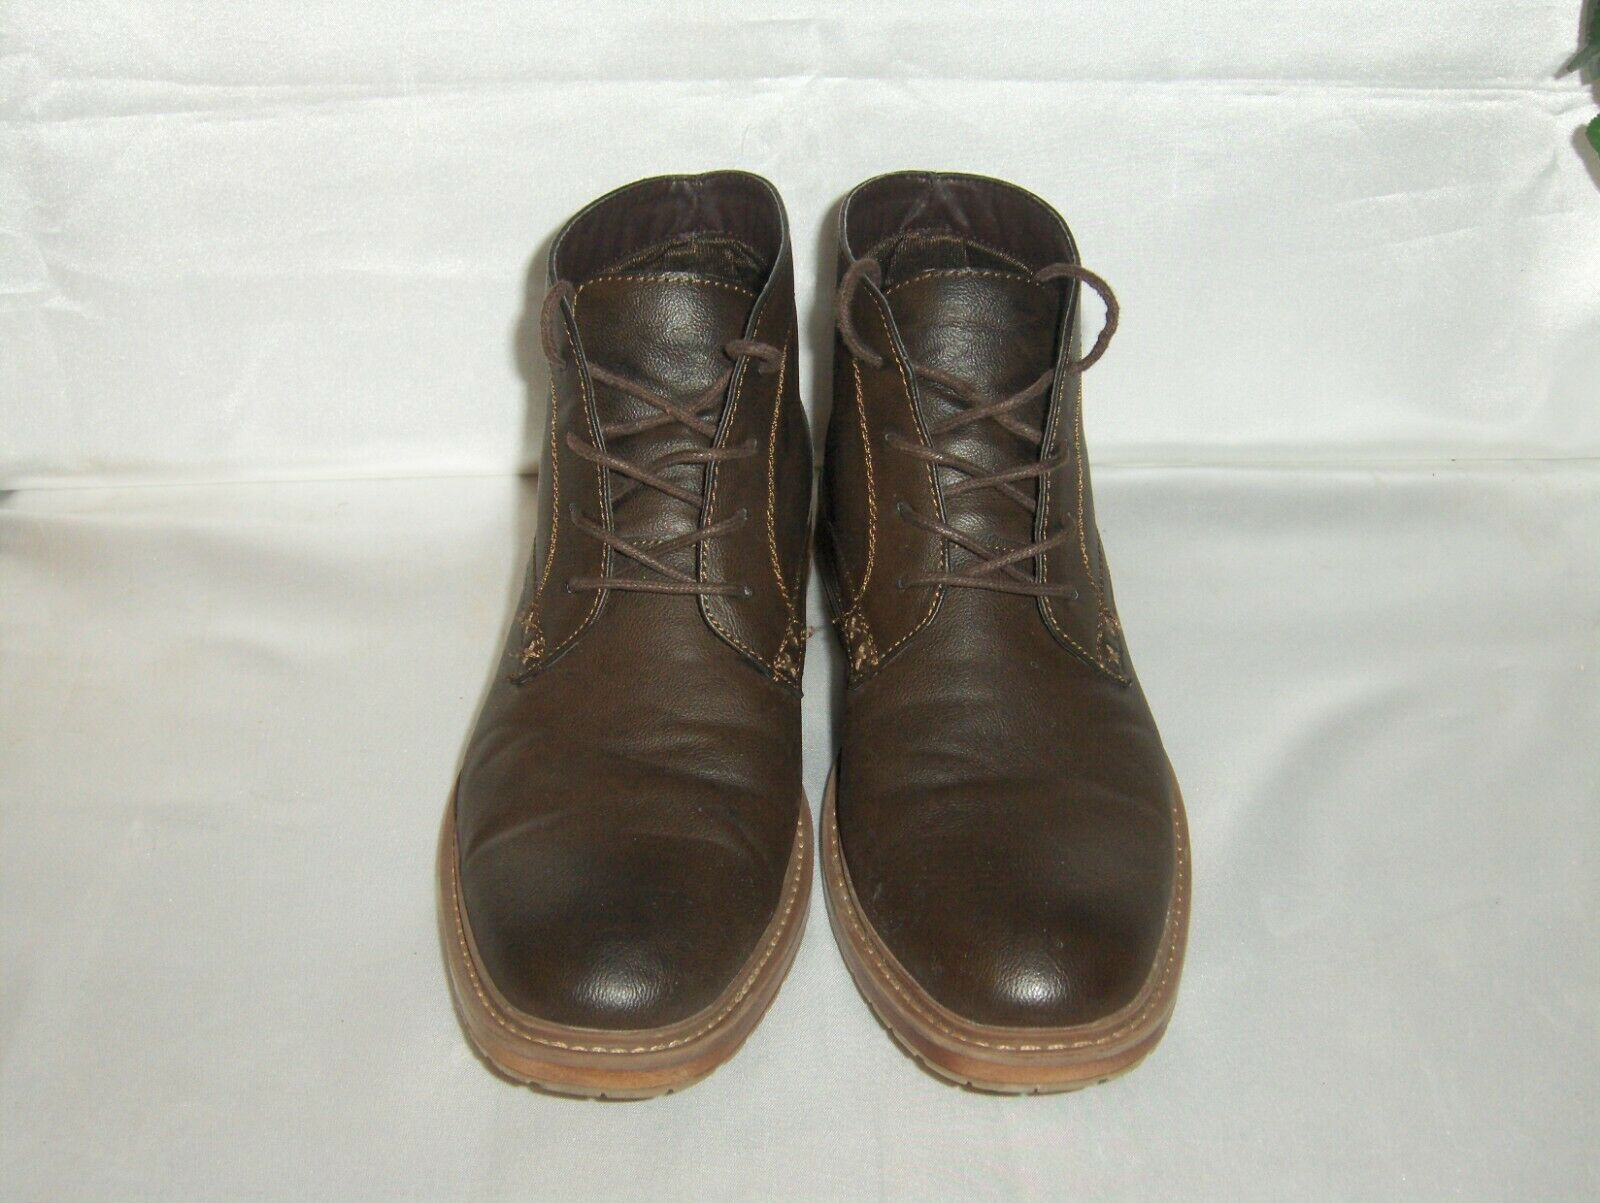 6eee424a5056 Men s Perry America Ultra Foam Clayton Ankle Brown Boots 9 Ellis  nrmxfs2816-Casual Shoes